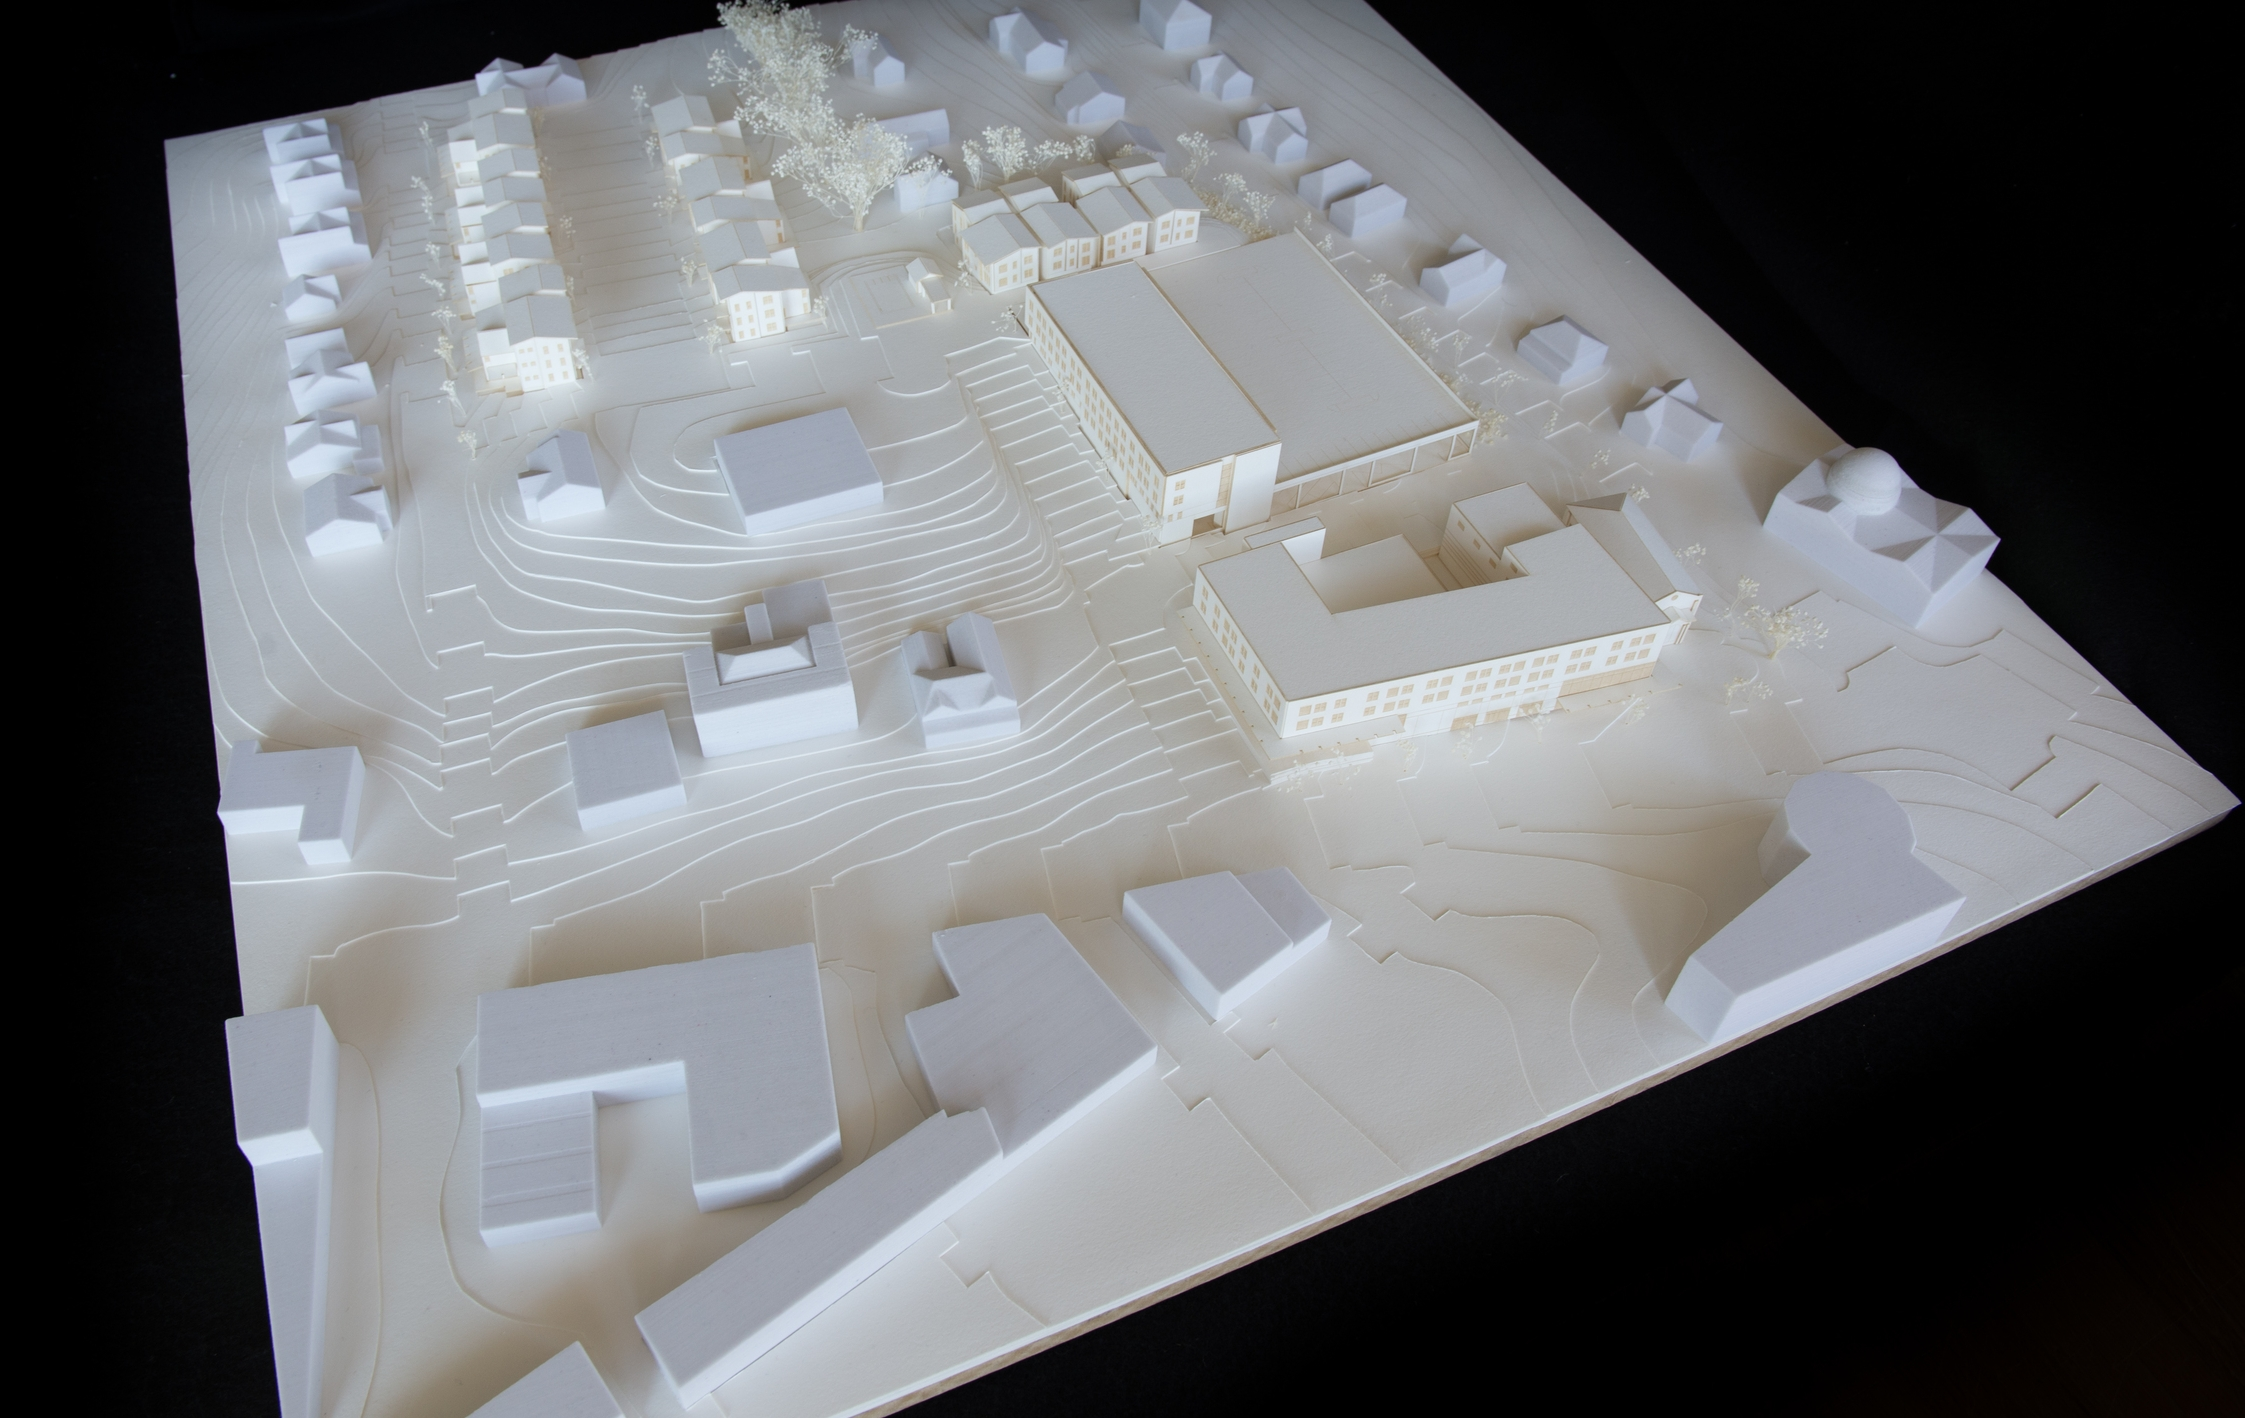 Scale Model by Macmillan Pazdan Smith Architects